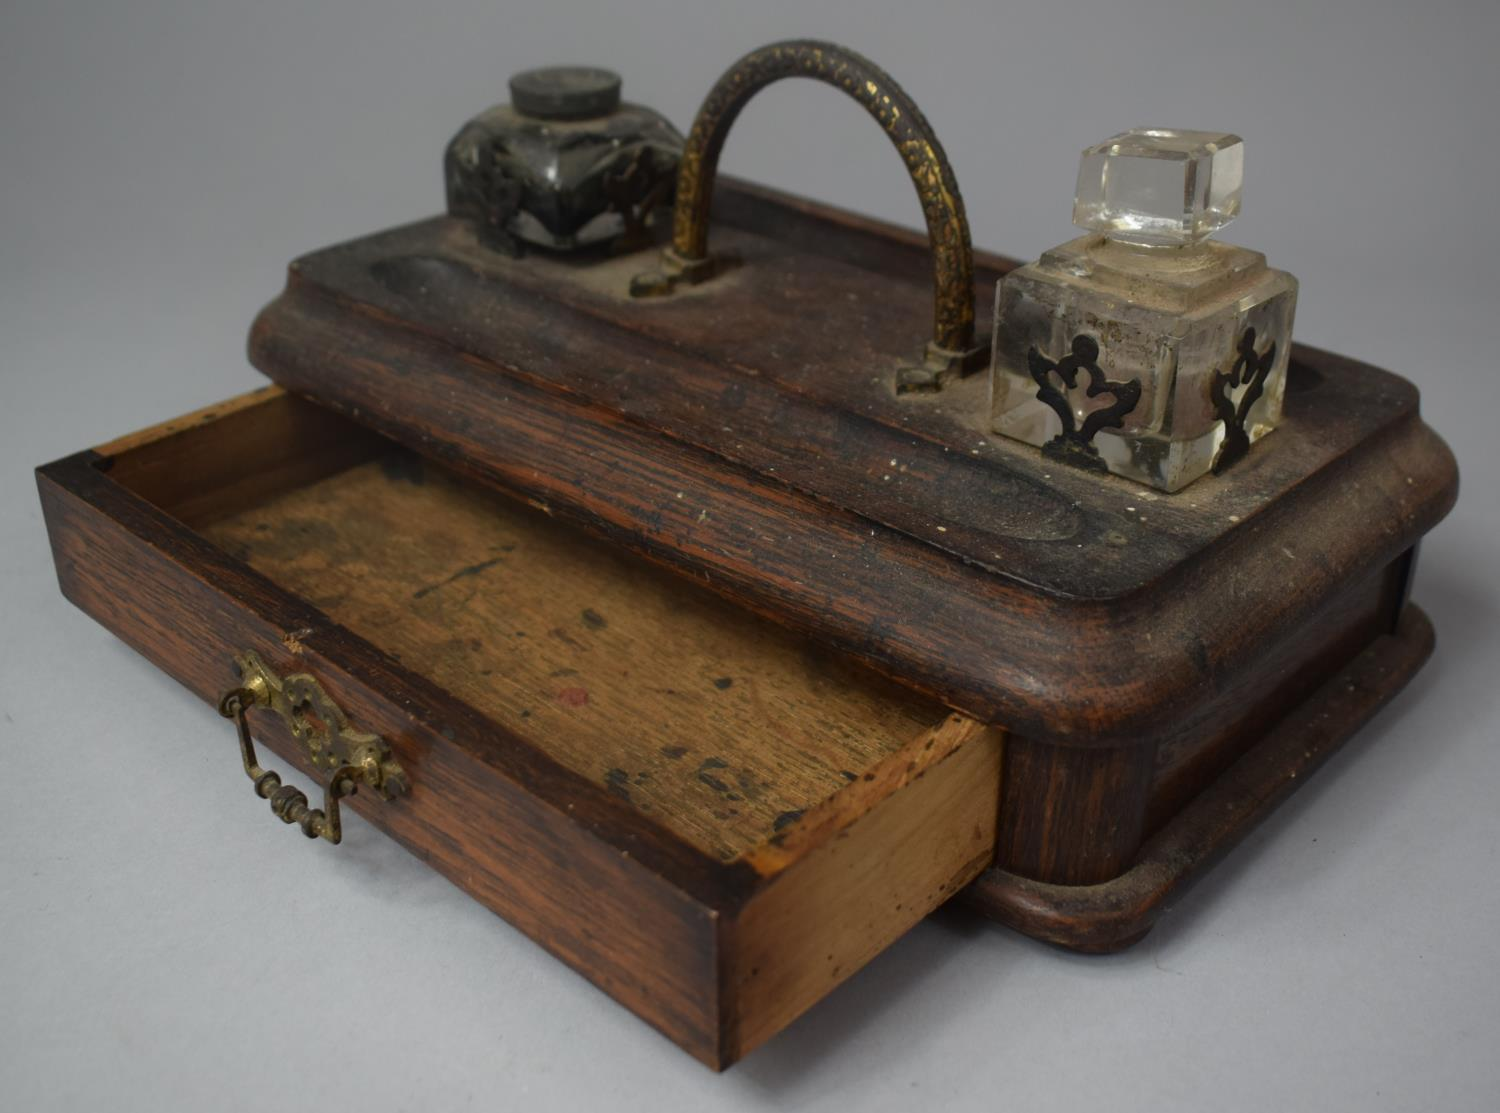 A Late Victorian Desktop Penrest and Inkstand with Two Ink Bottles and Base Drawer, 25cm Wide - Image 3 of 3